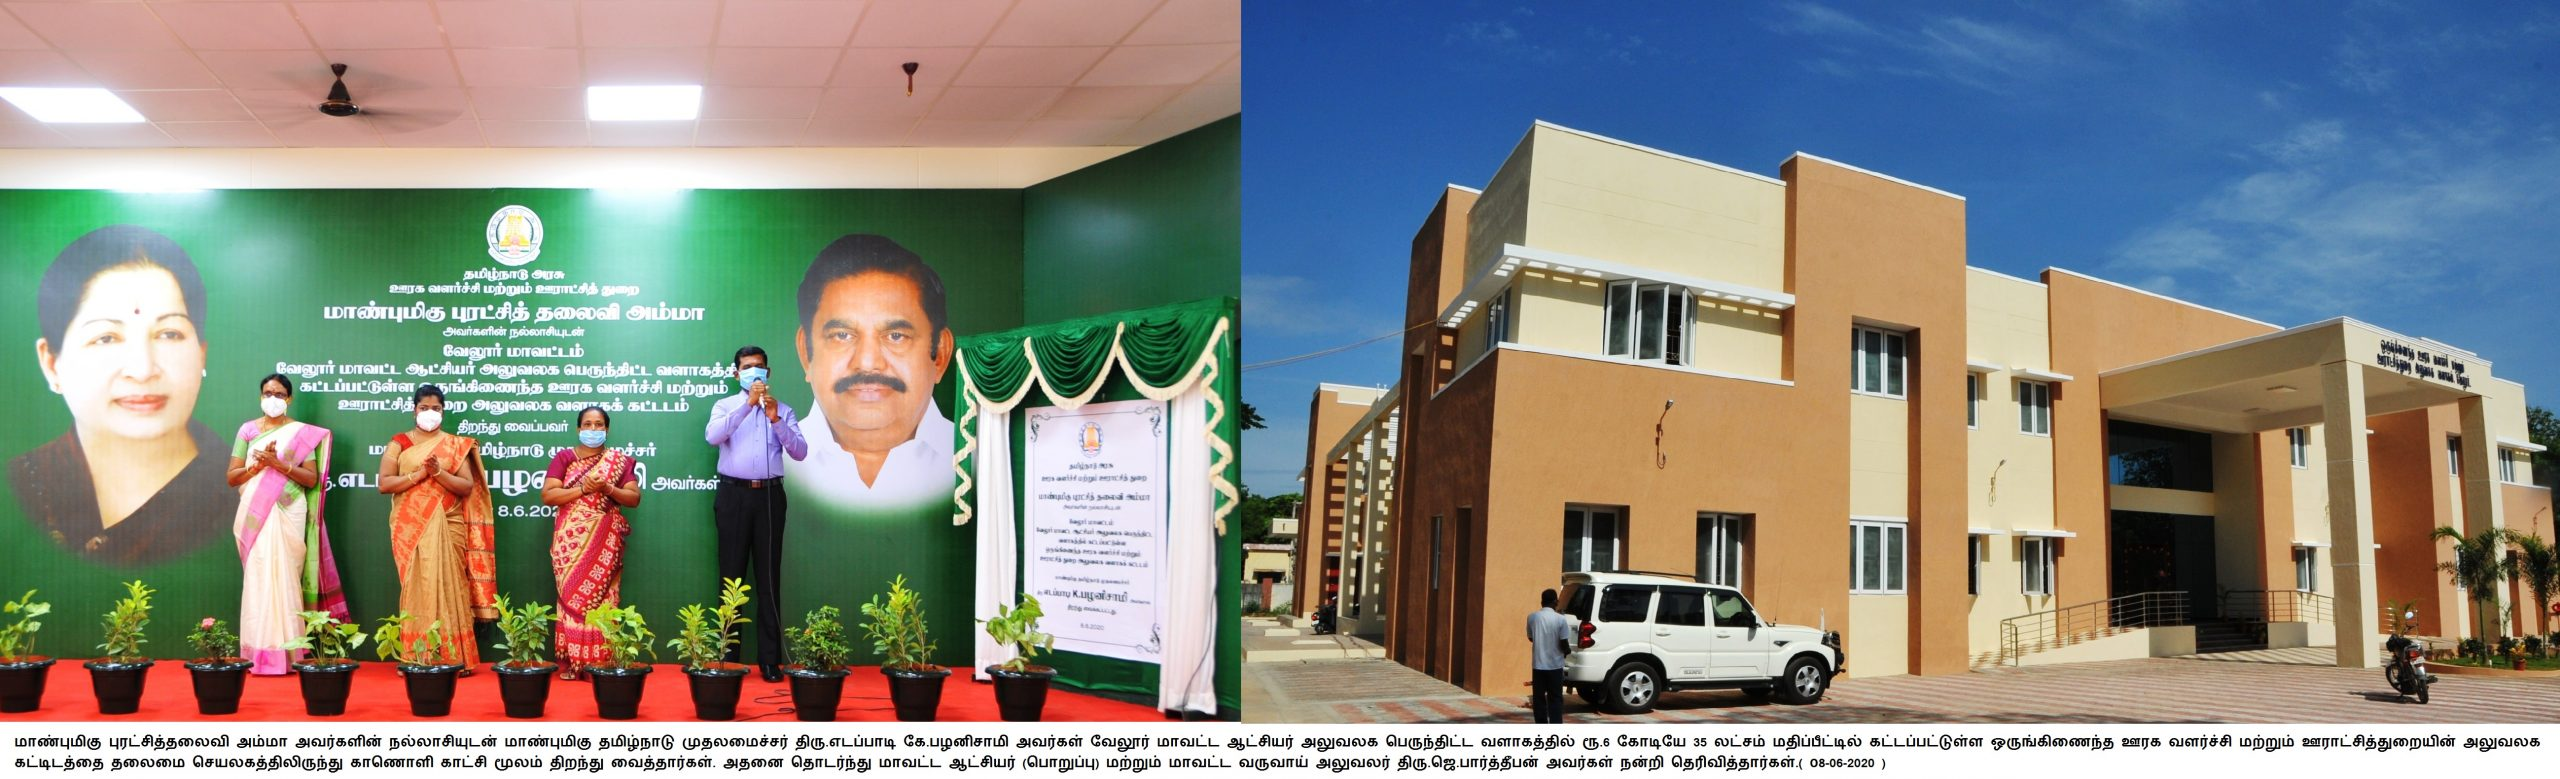 Vellore District New DRDA Office Building Inauguration by Honorable Chief Minister Edapadi K.Palanisami through Video Conference 08-06-2020